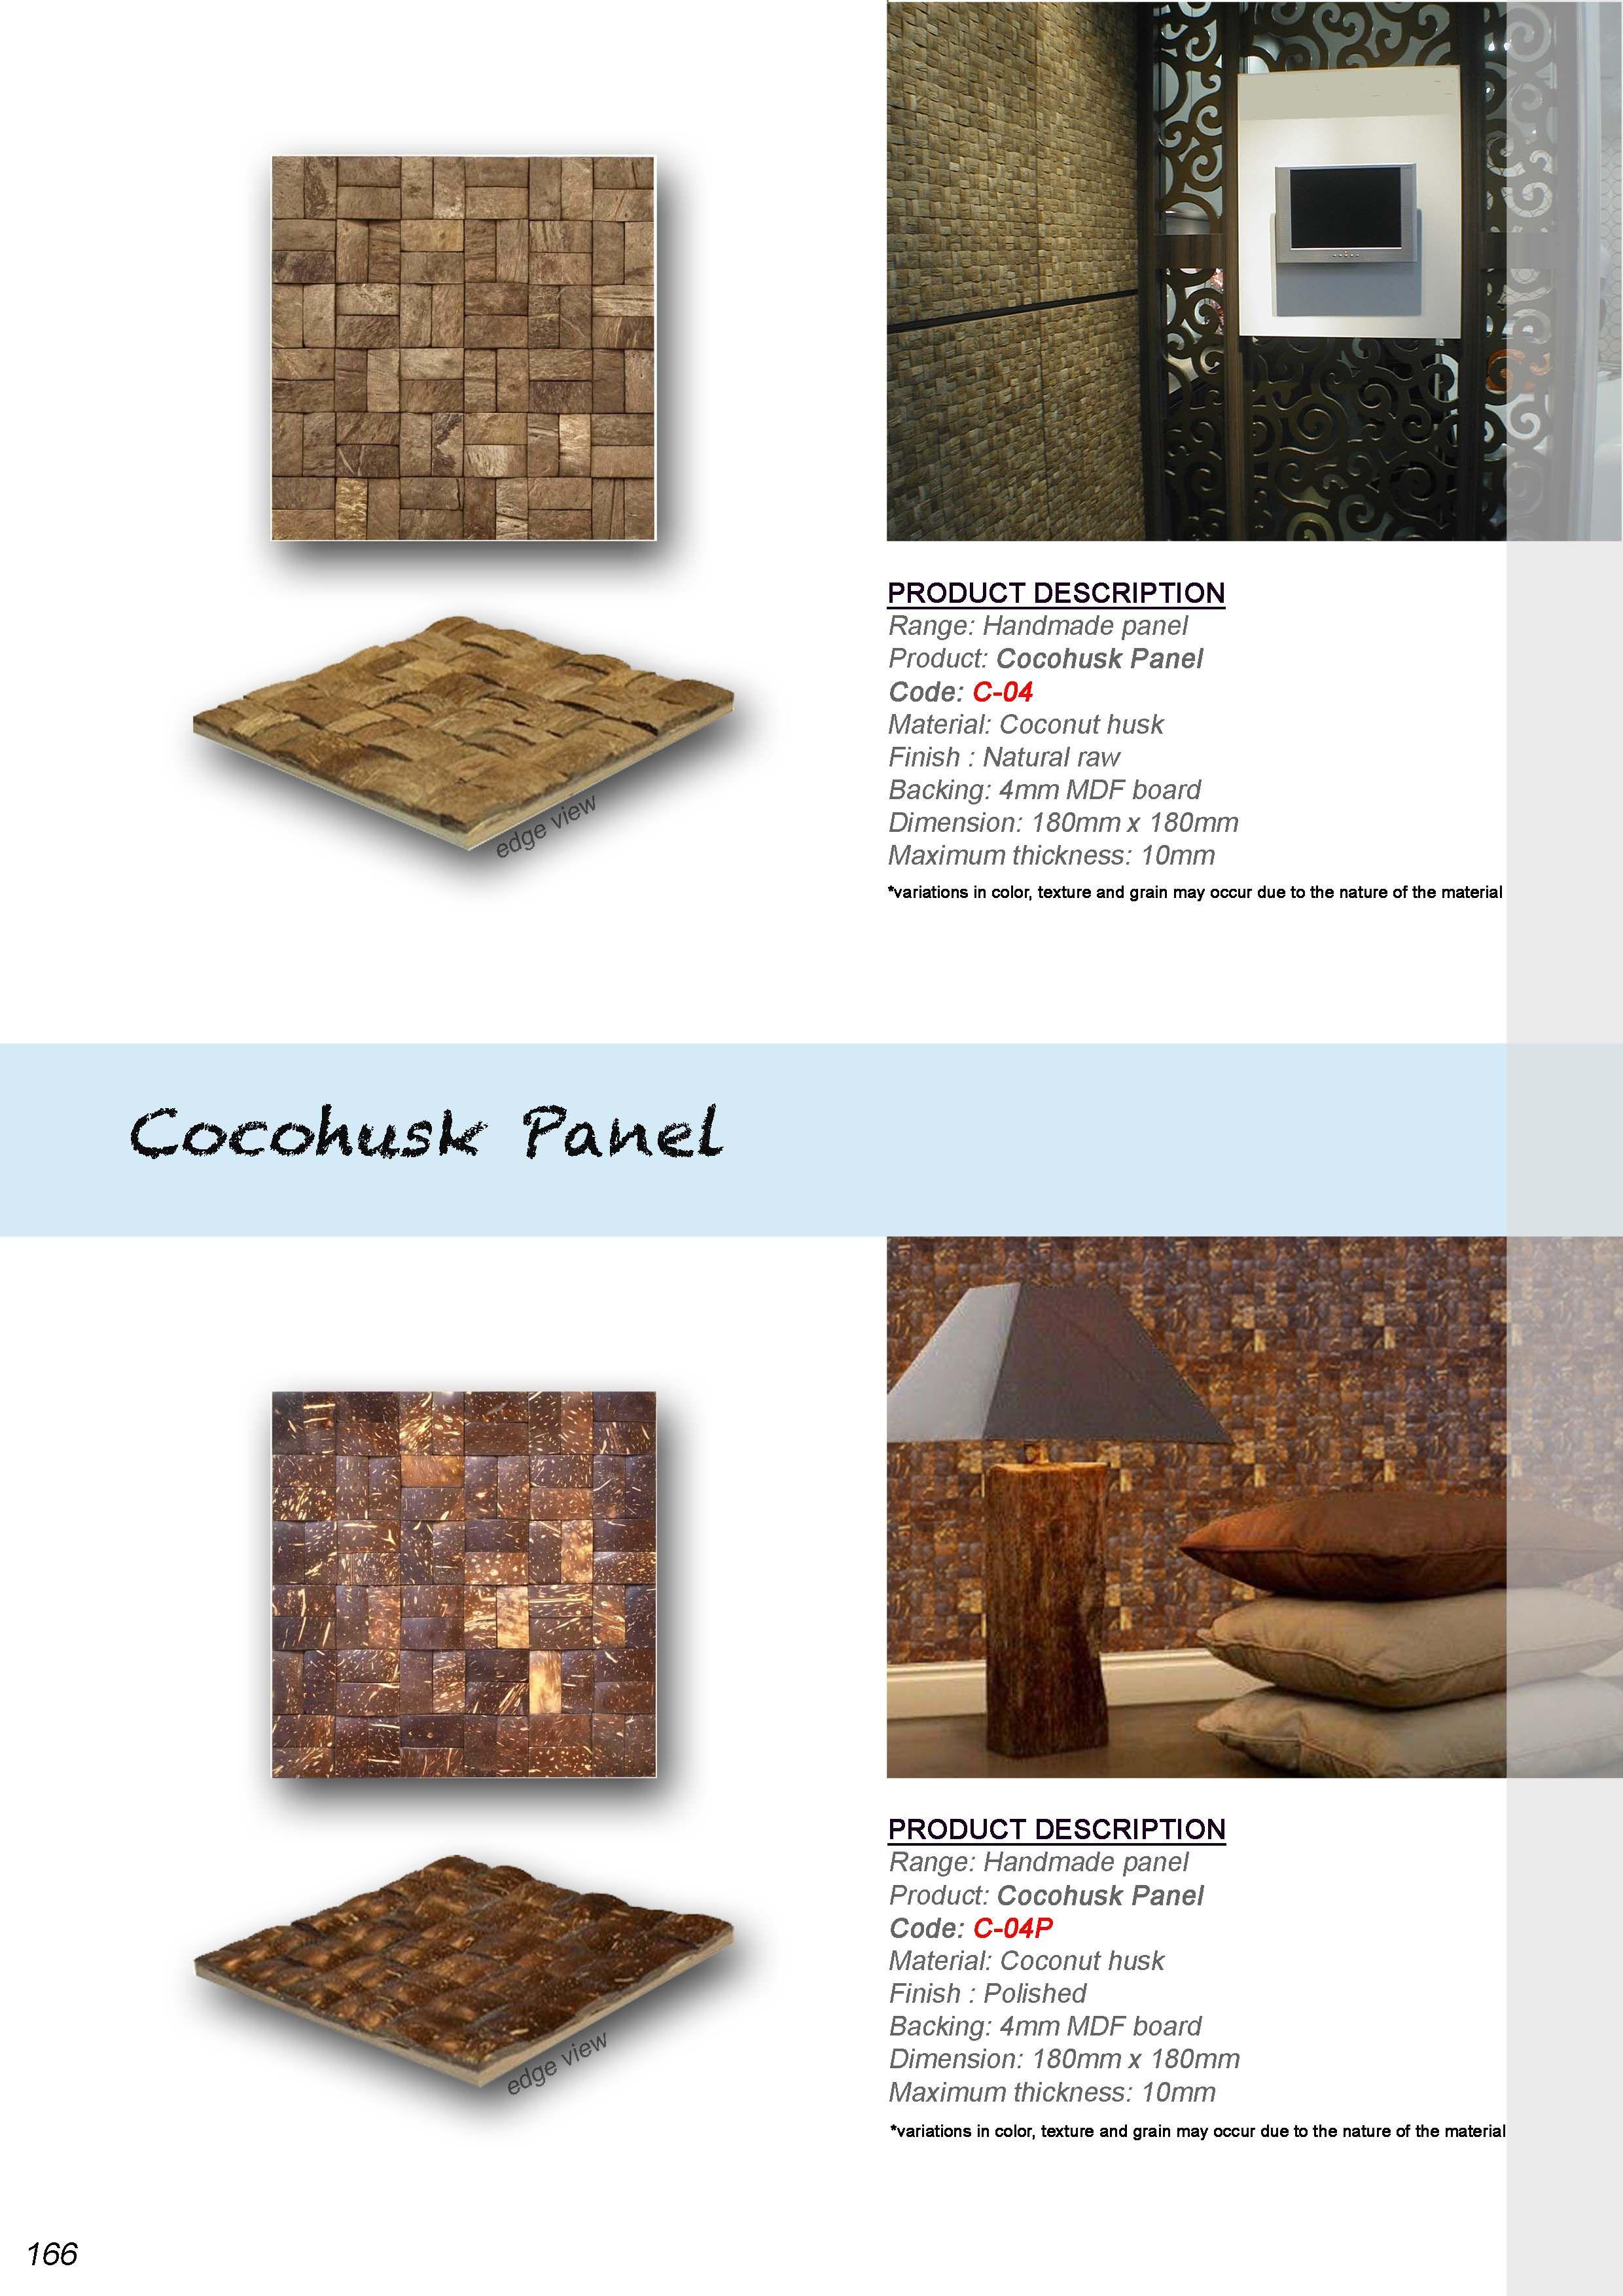 Coconut Husk Is A Natural Material Found In Most Tropical Countries